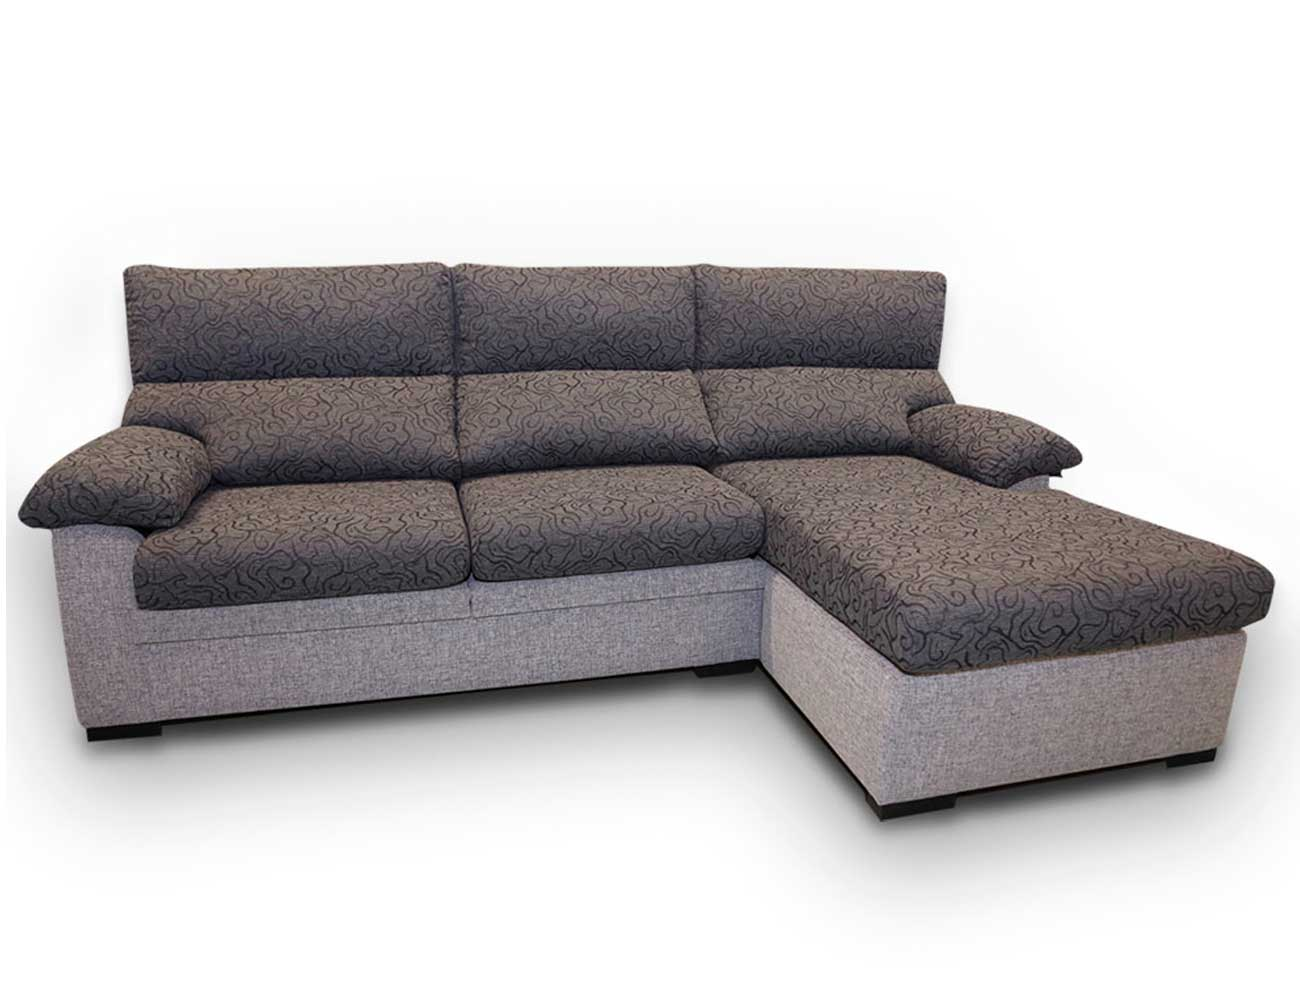 4900_sofa chaiselongue asientos extraibles gris marengo